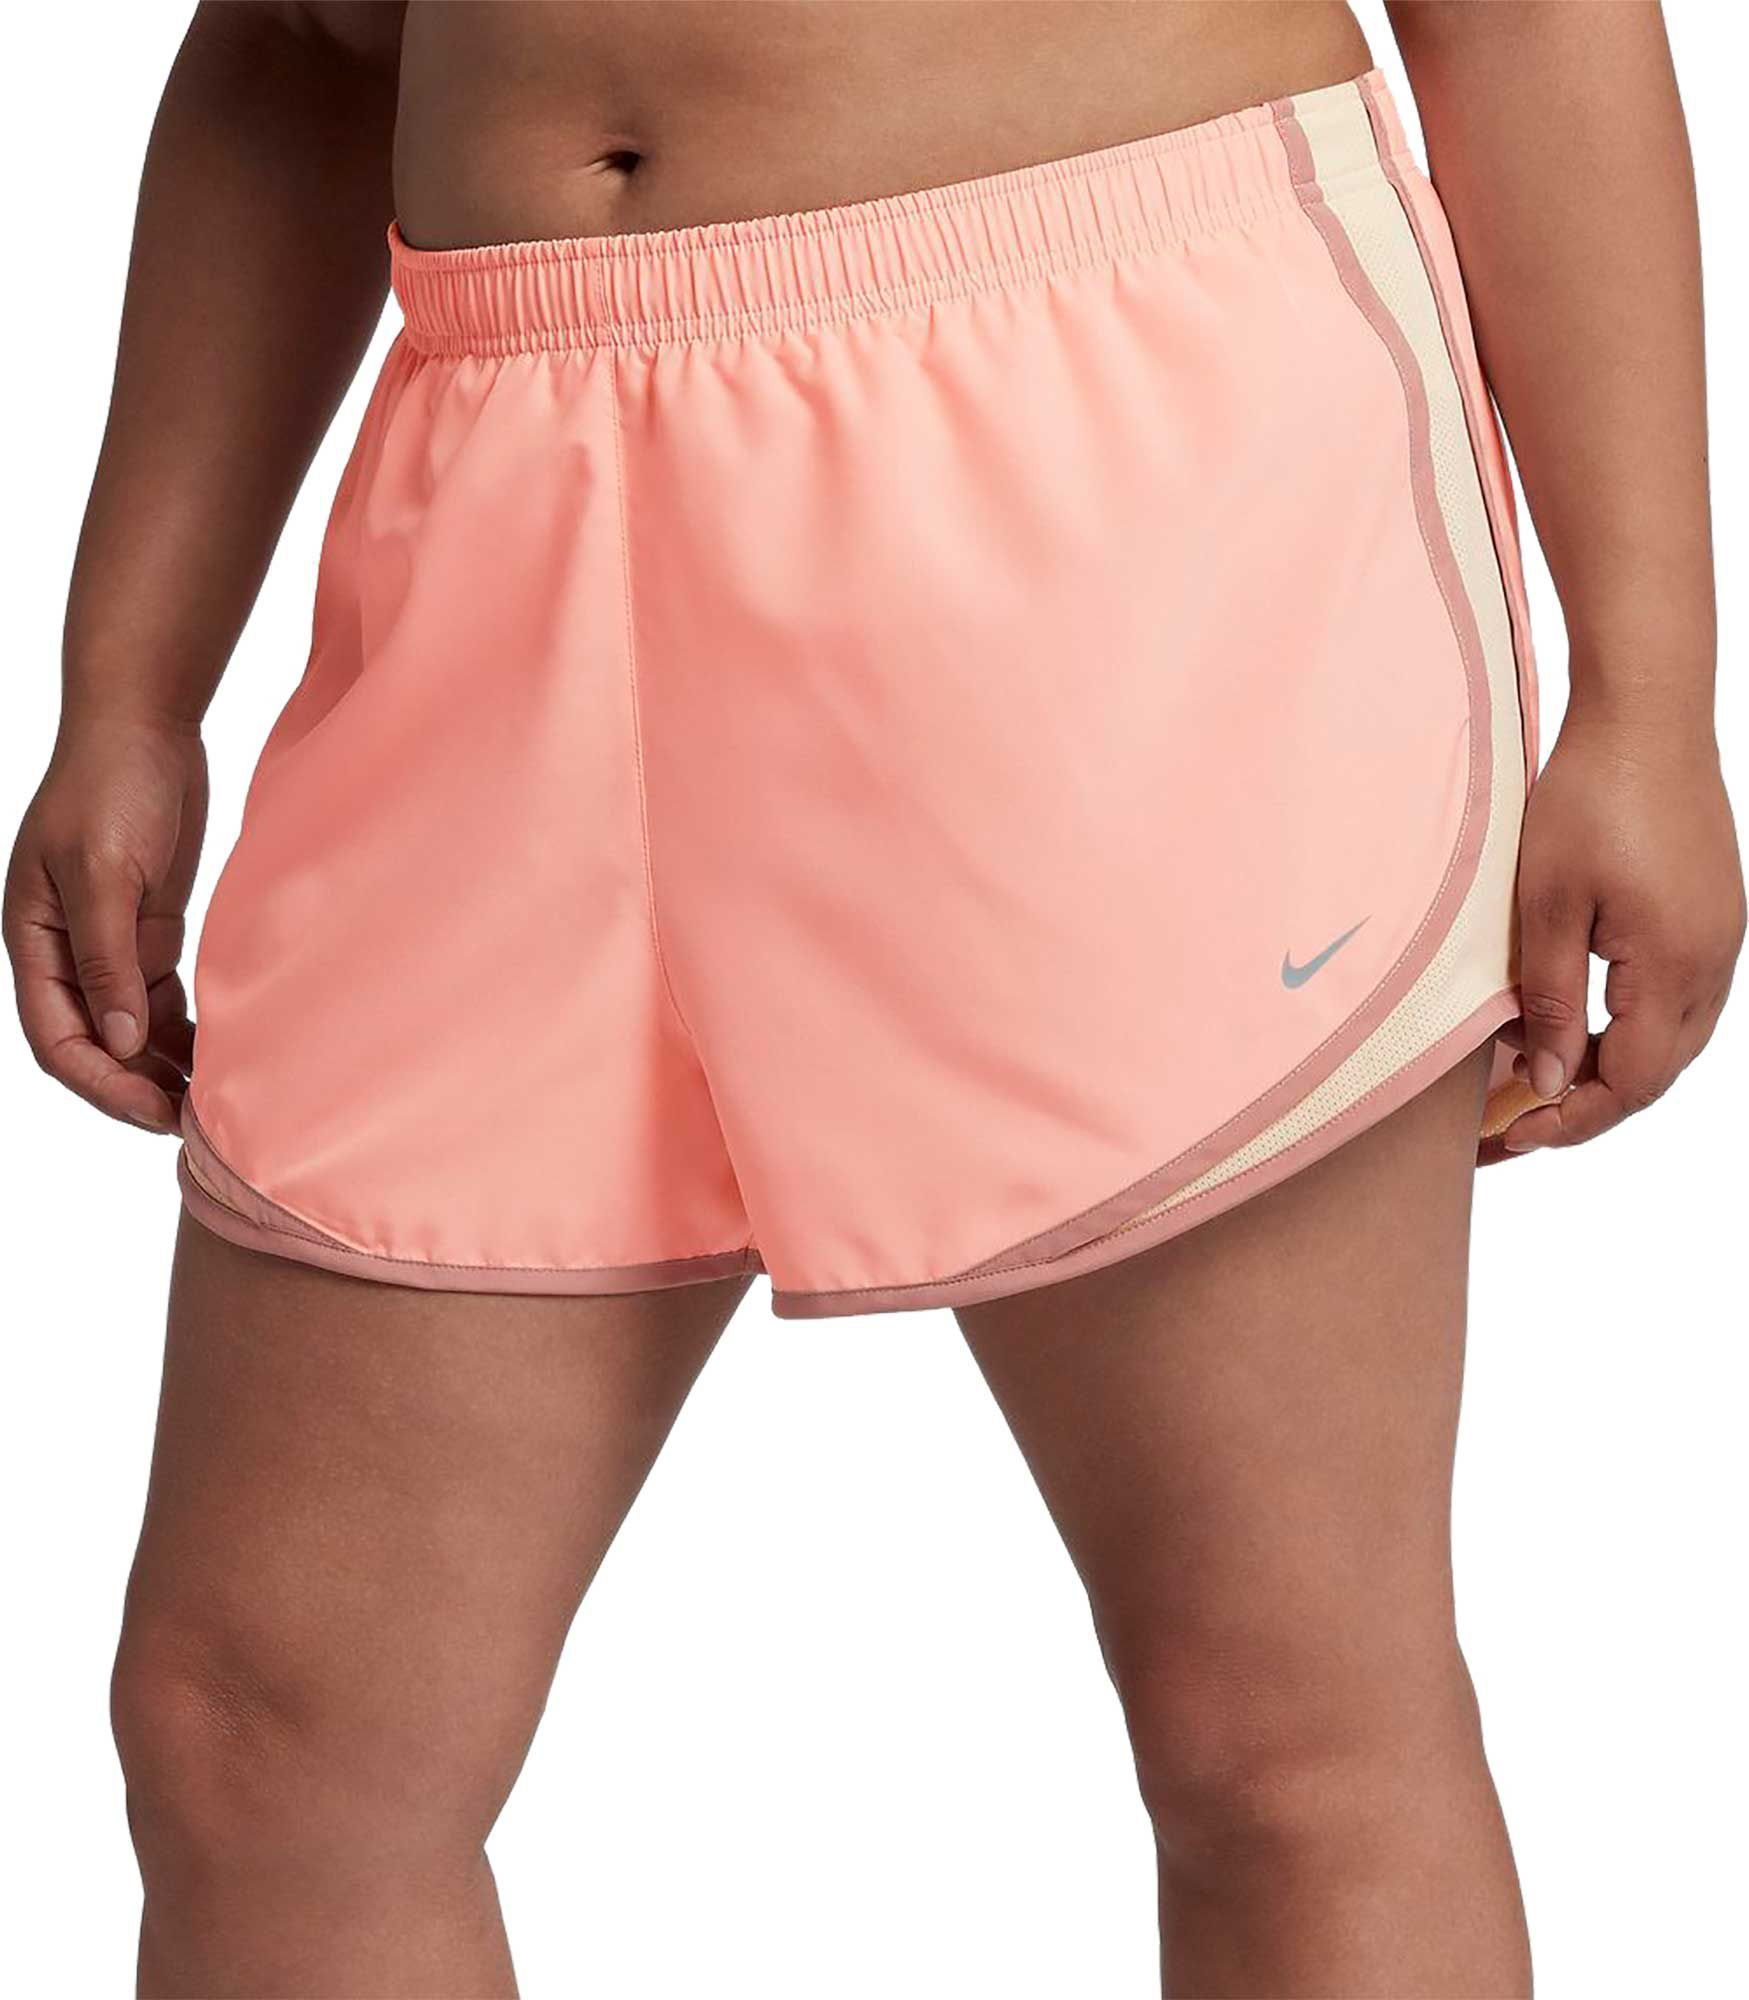 463004504407a Nike Women's Plus Size Dry 3'' Tempo Running Shorts, Size: 3XL, Pink